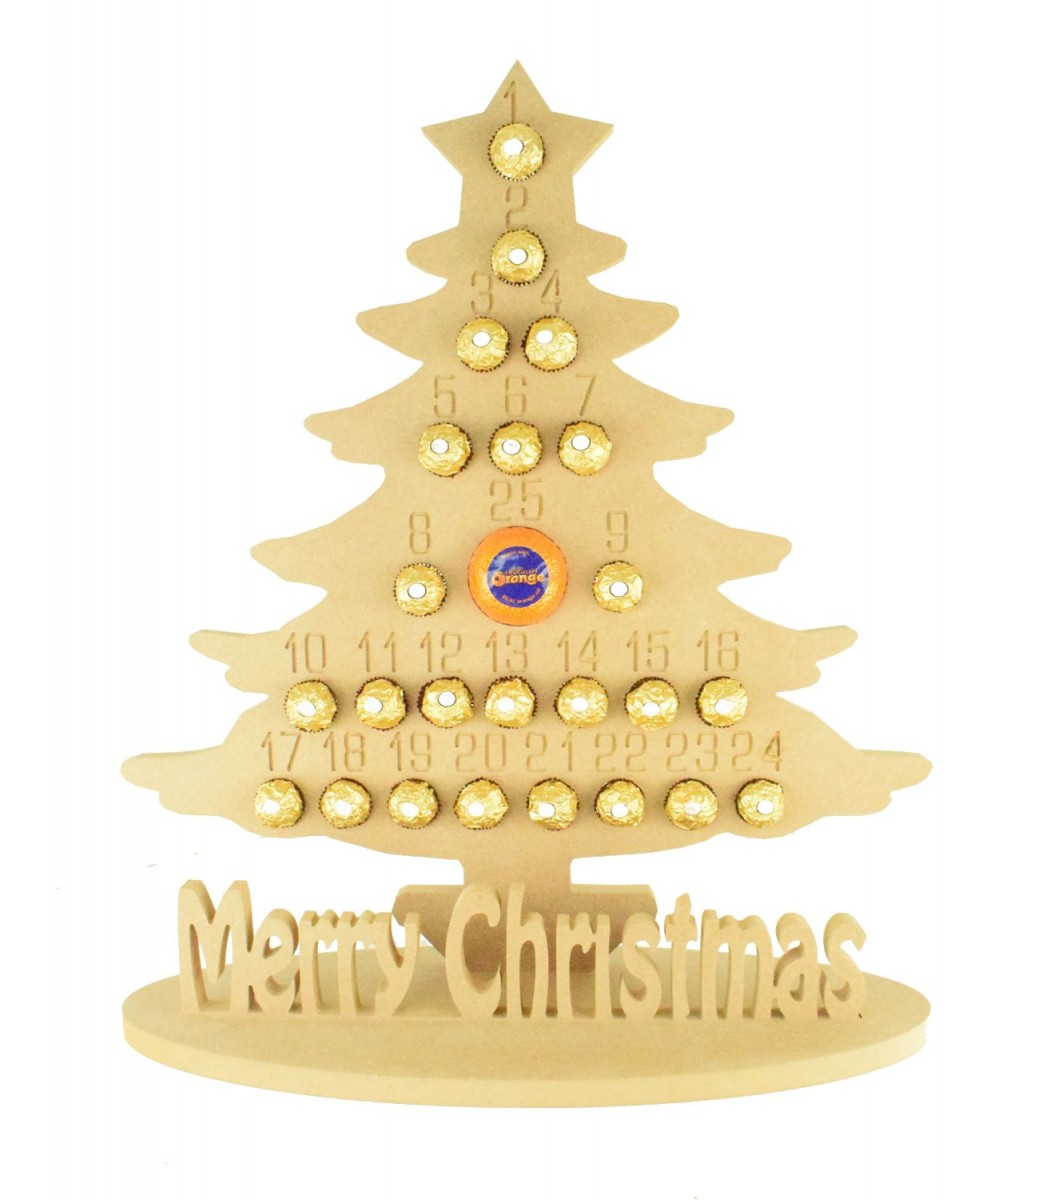 Super sized 18mm Freestanding Christmas Tree Chocolate Orange and Ferrero Rocher Holder Advent Calendar